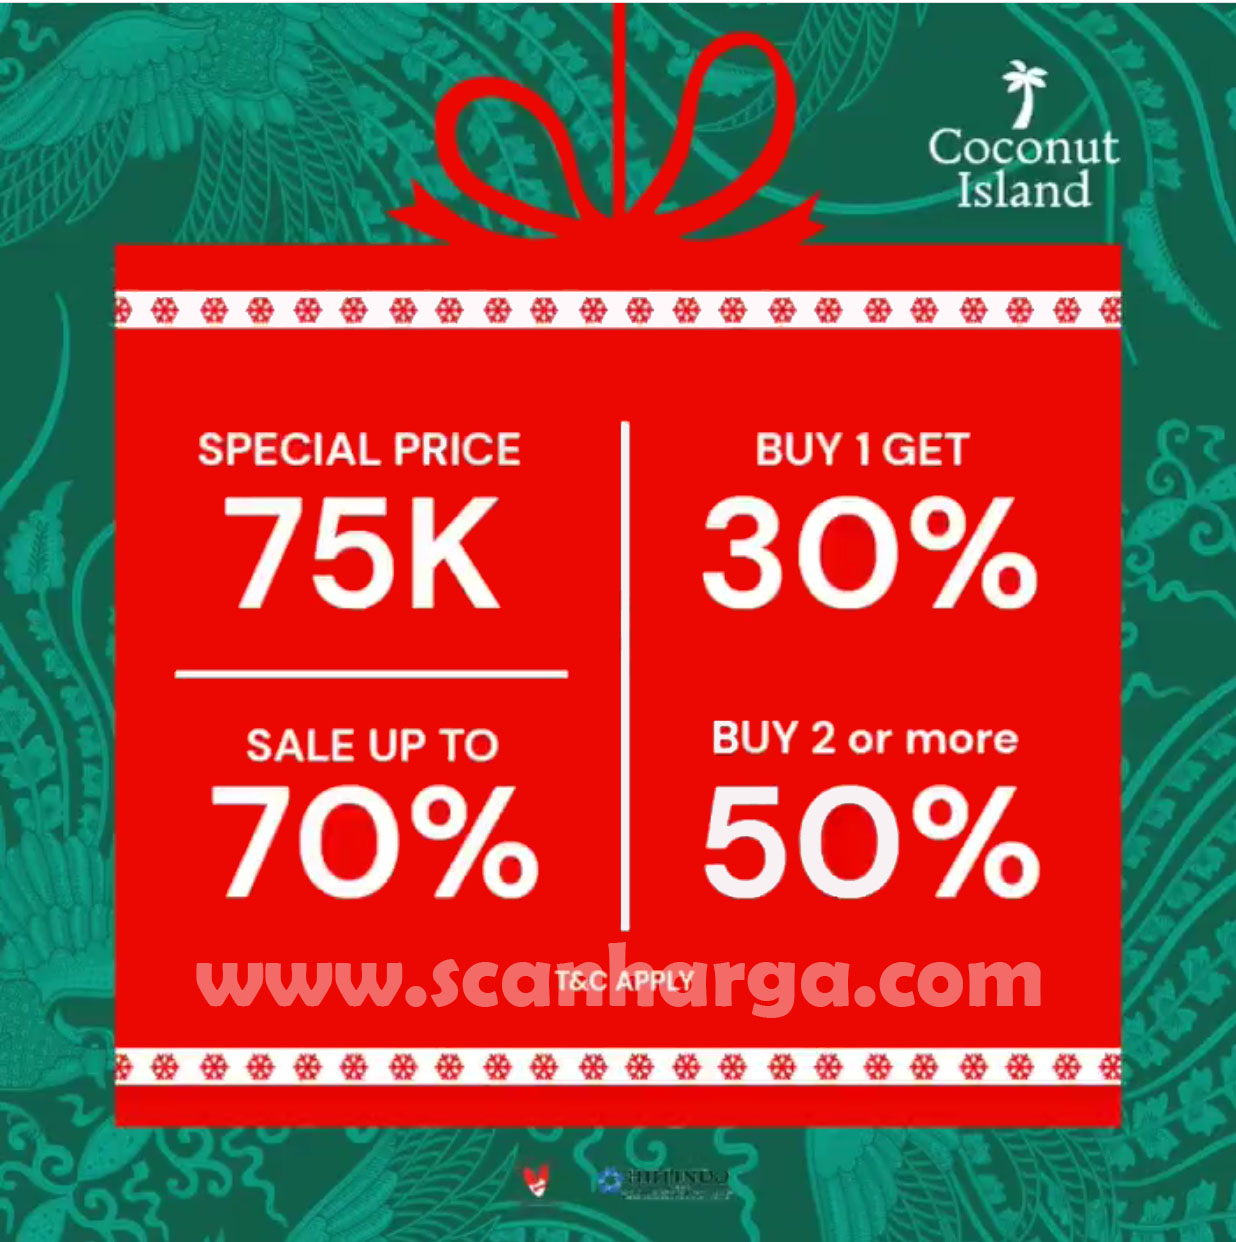 Promo Coconut Island Special Price 75K, Sale Up To 70%, Buy 1 Get 30% & Buy 2 Get 50%